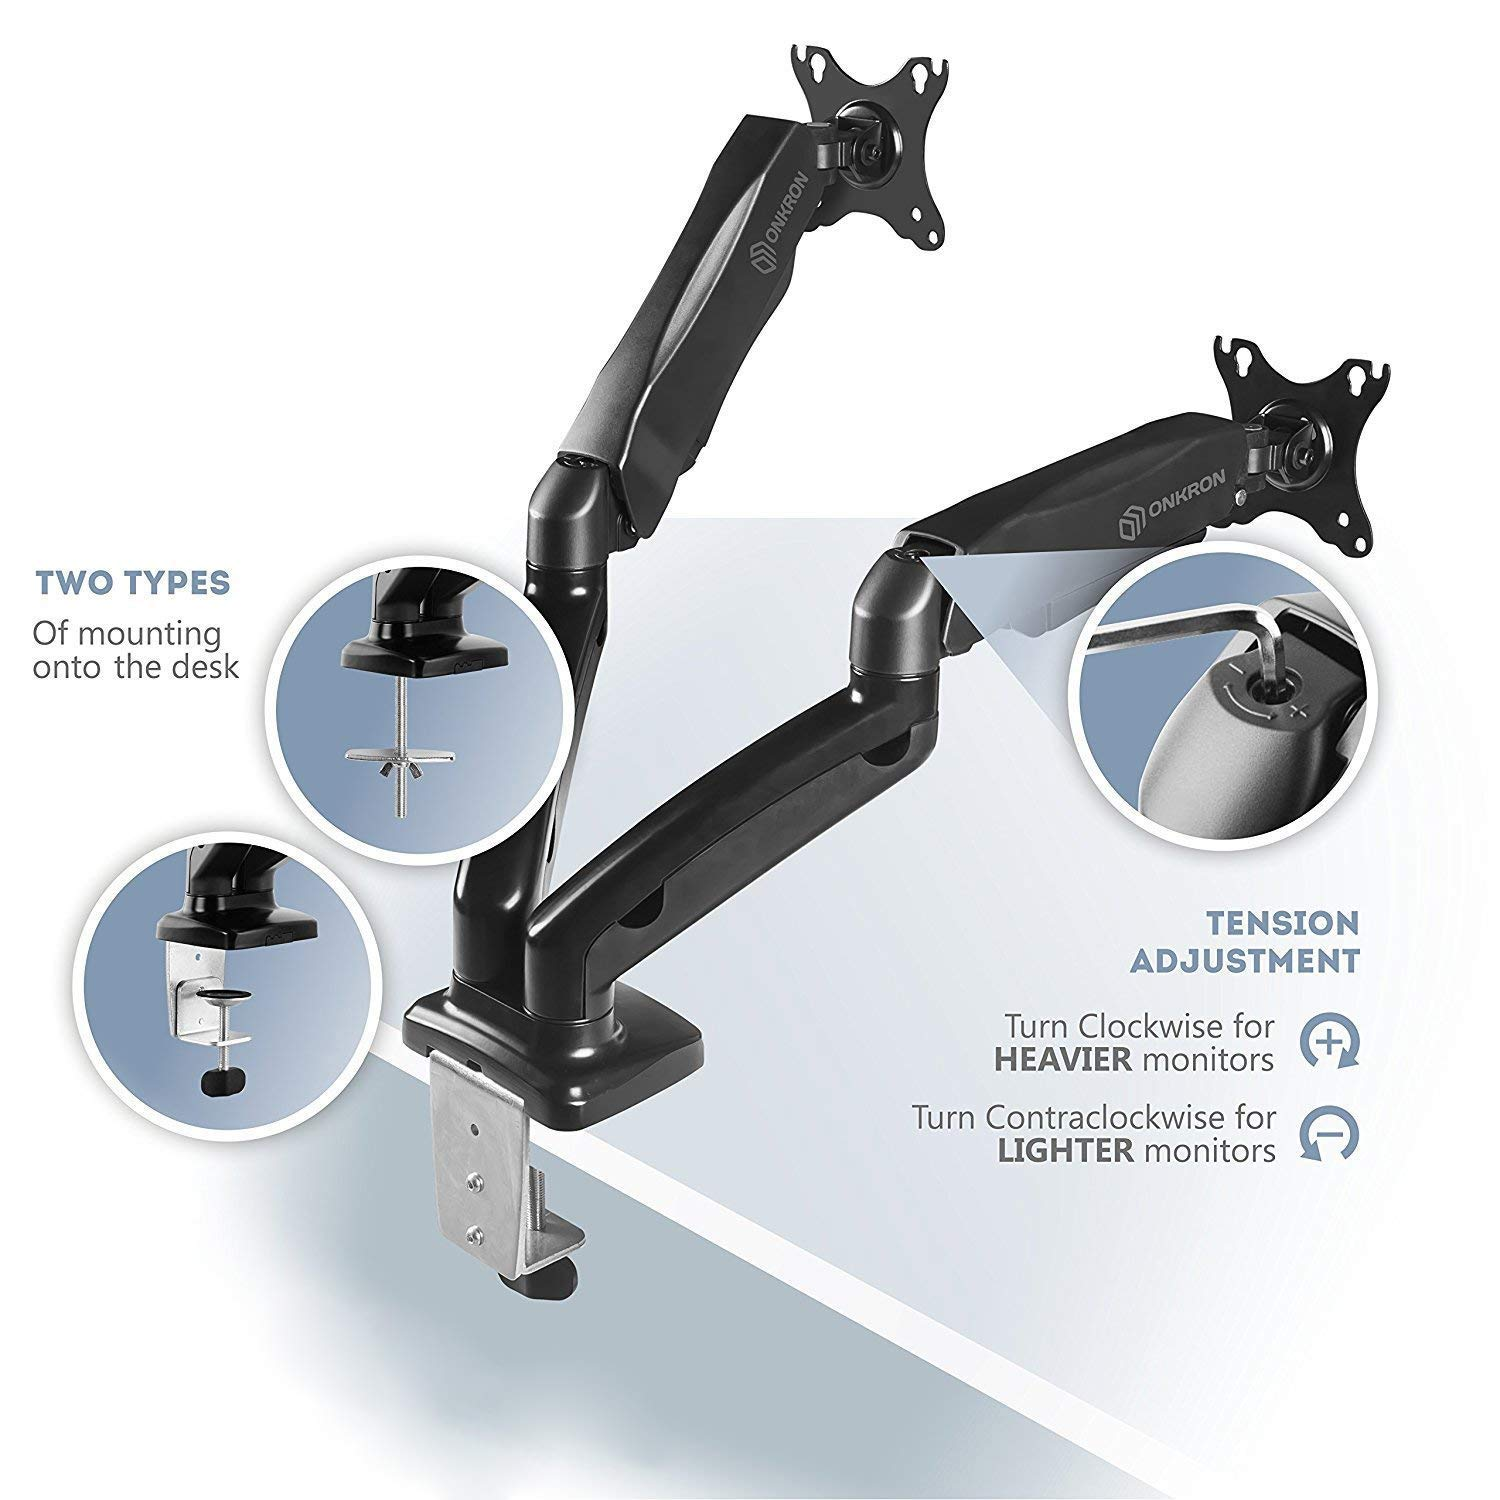 ONKRON Dual Monitor Desk Mount for 13 to 27-Inch LCD LED Computer TV Screens up to 14.3 lbs G160 by ONKRON (Image #3)